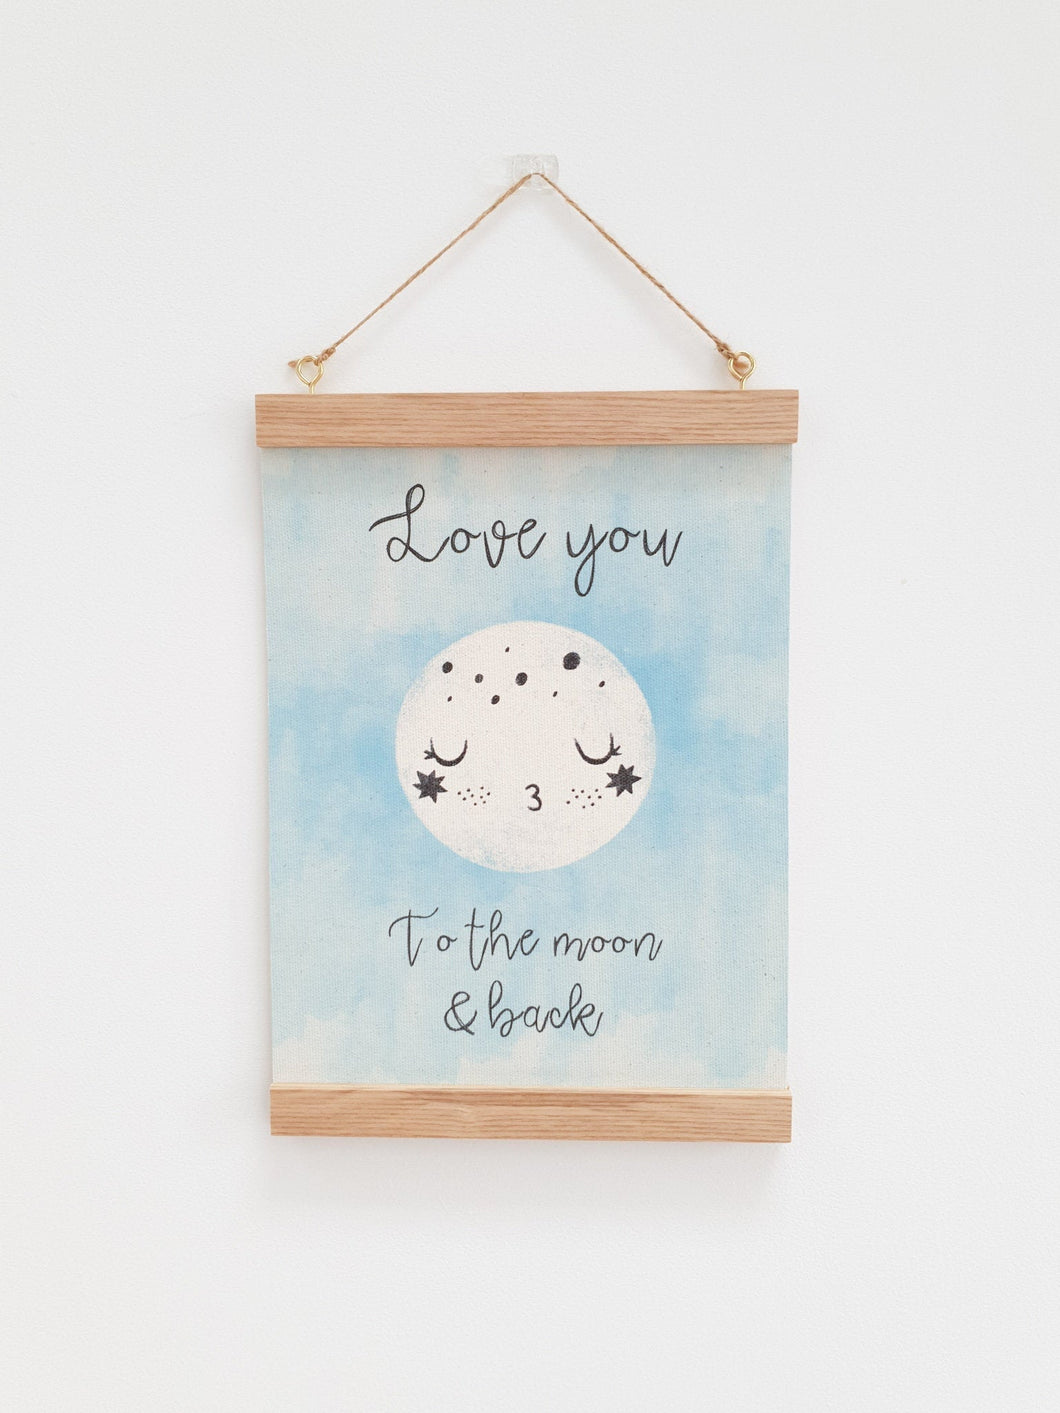 Love you to the moon canvas print with wooden hanger - Moon nursery accessory - Moon bedroom accessory - Wooden Print hanger - Blue nursery